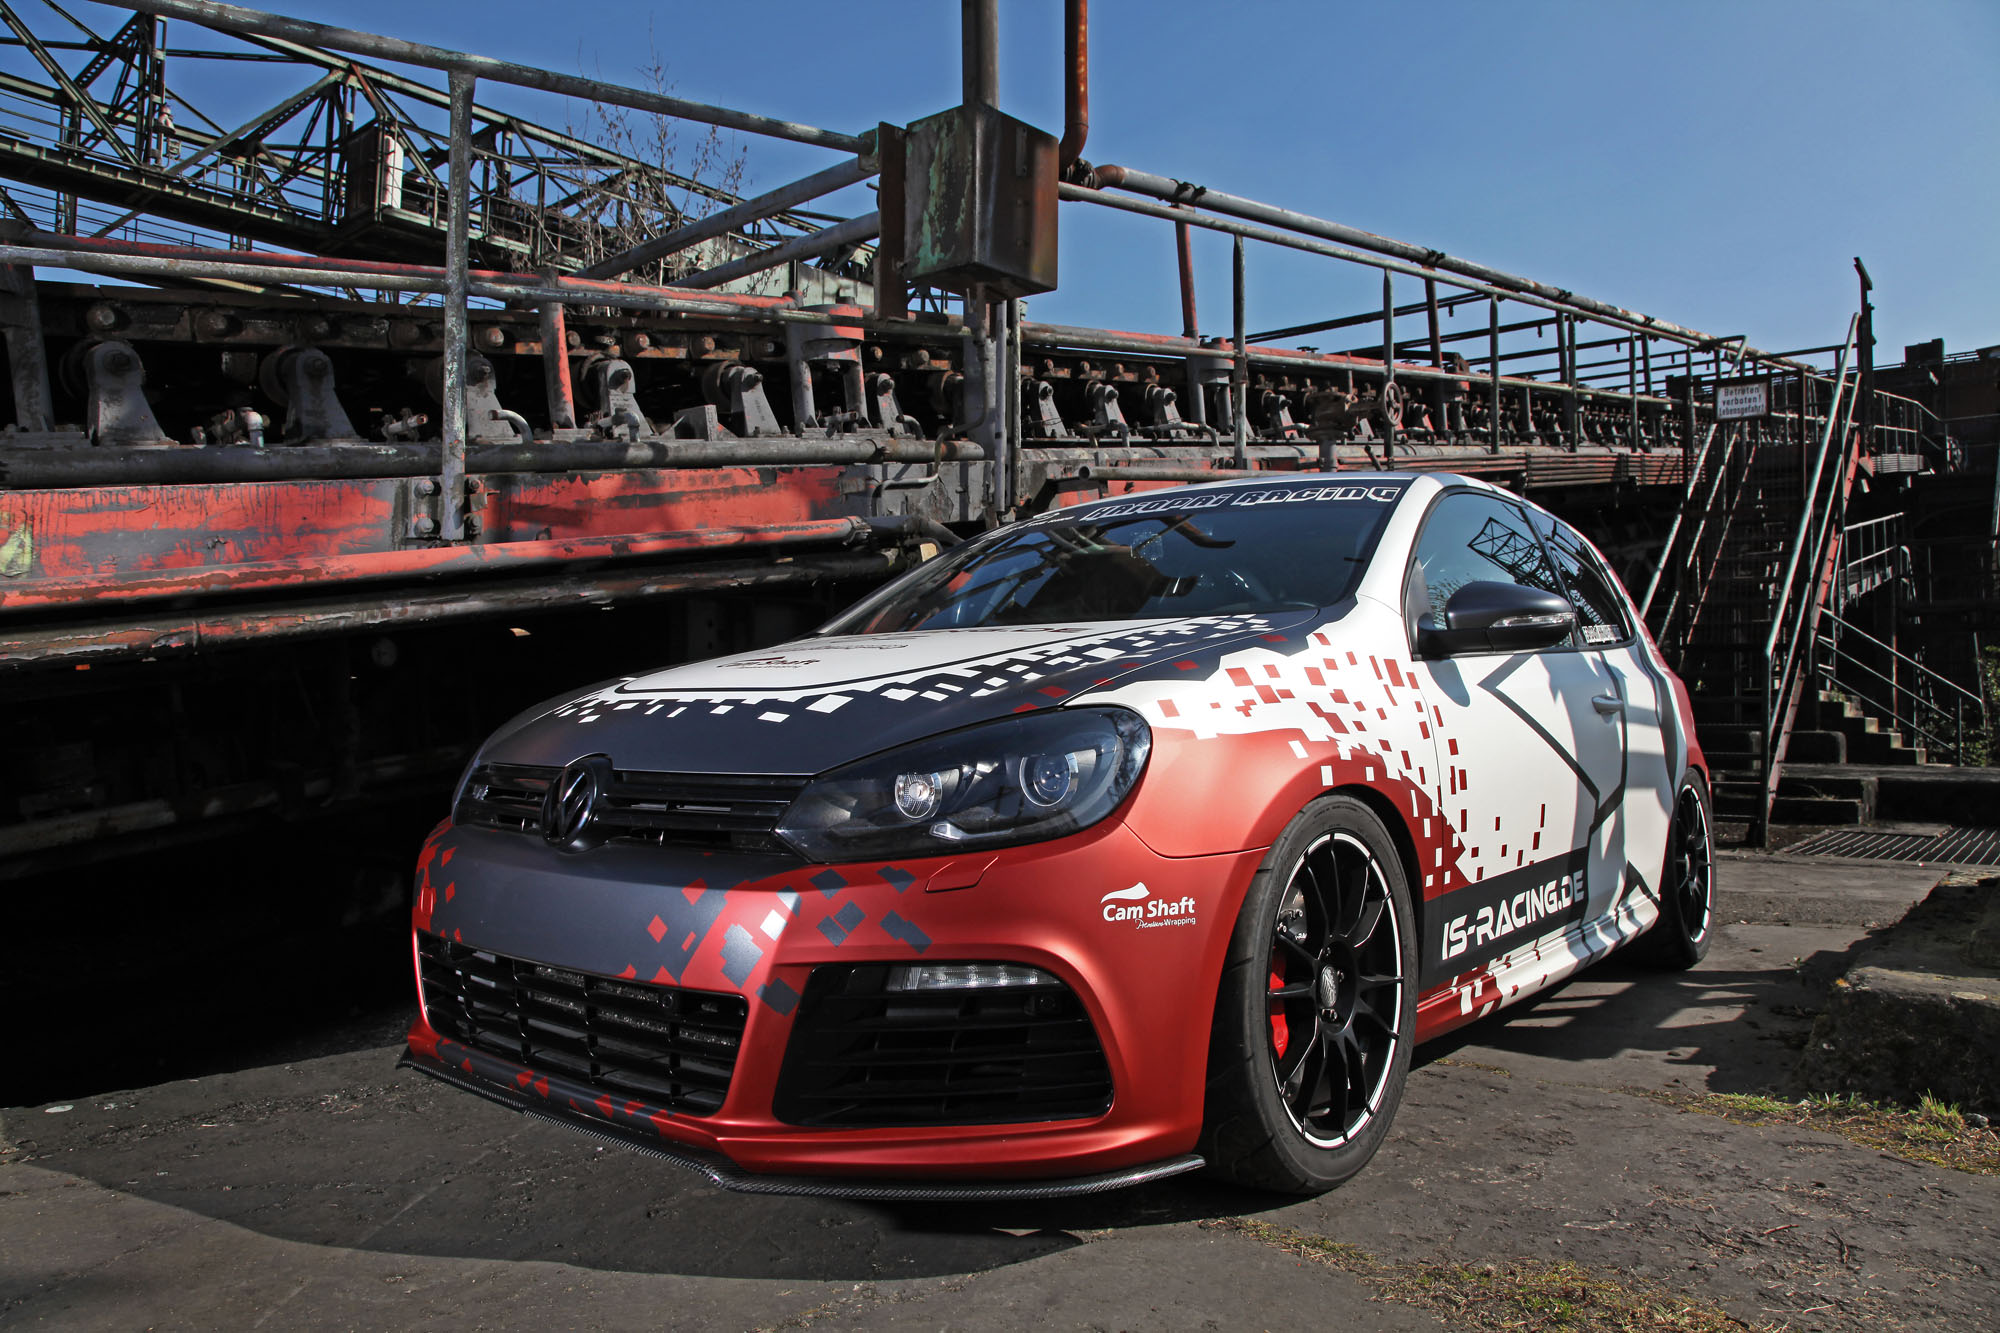 vw-golf-6-r-haiopai-racing-cam-shaft-14